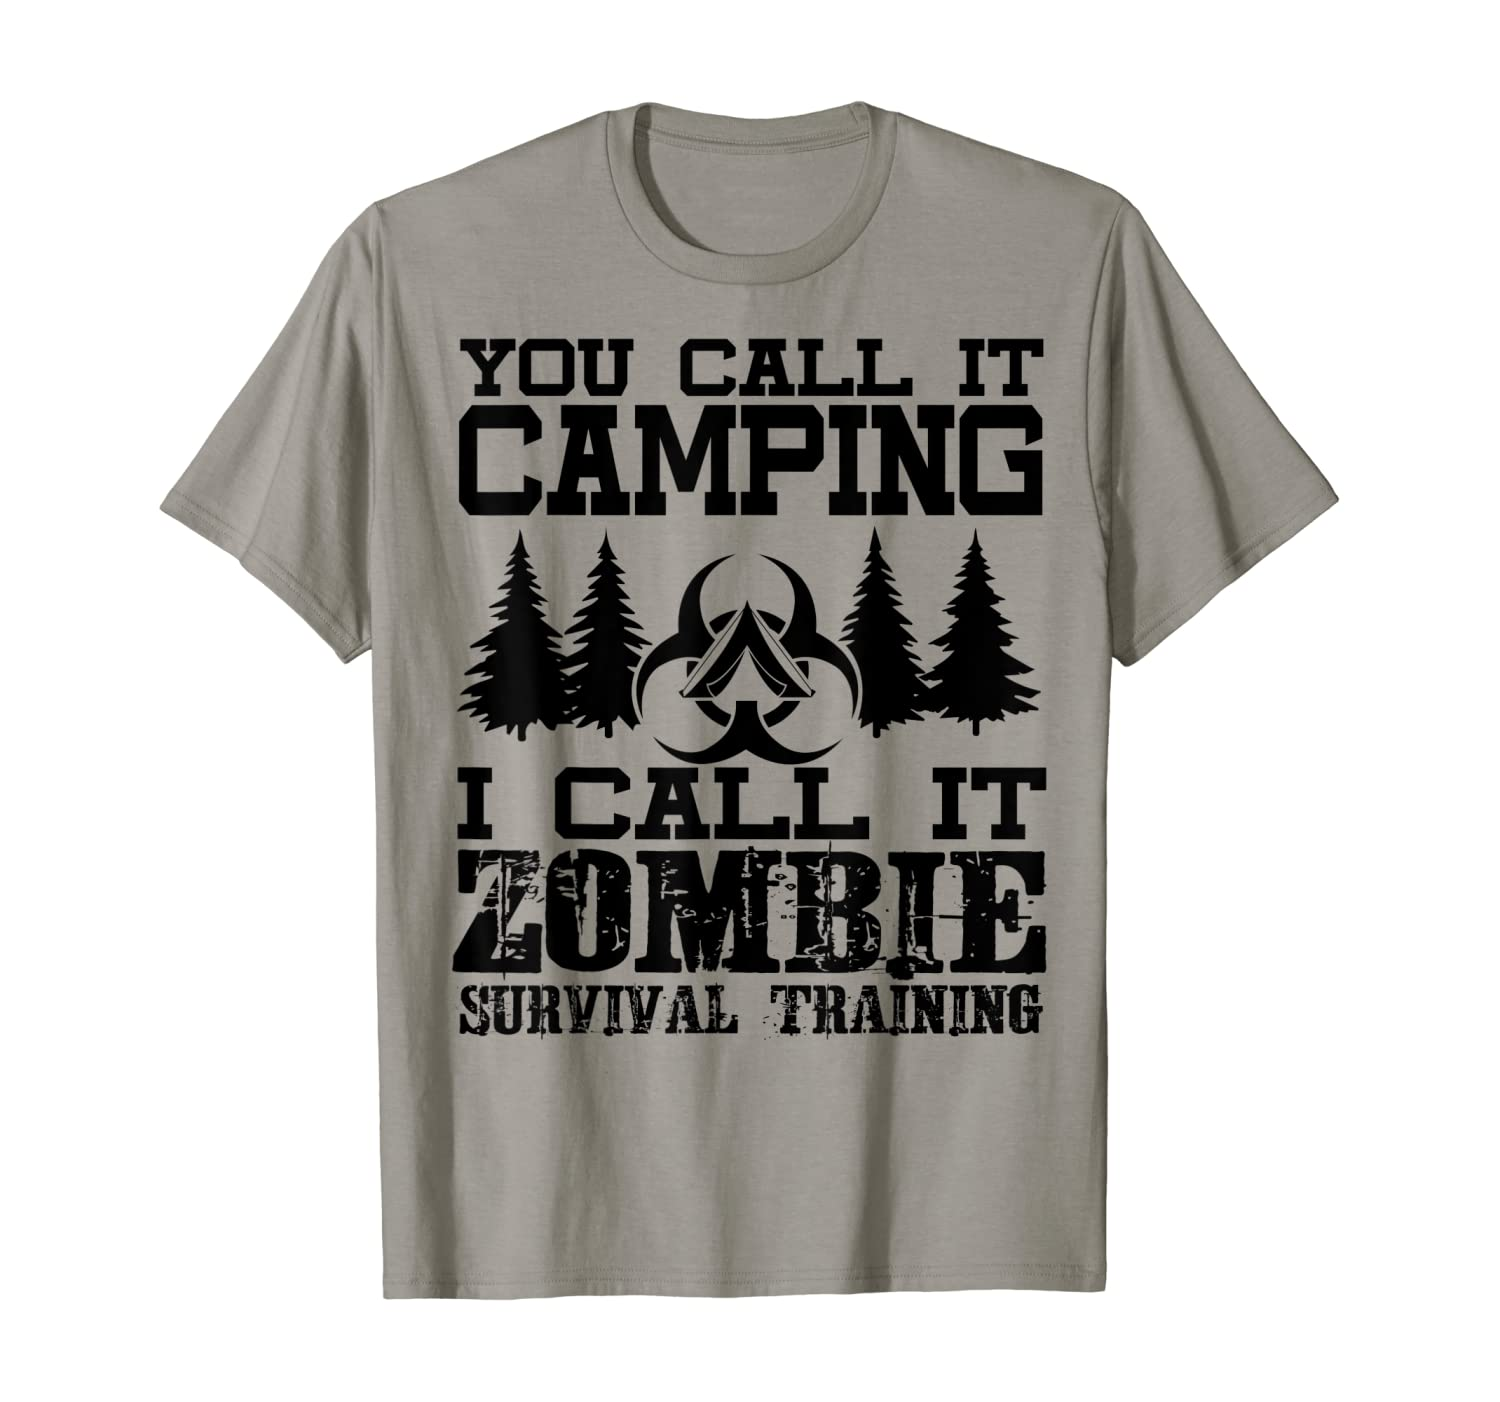 Zombie Survival Training Camping Shirt - Funny Halloween T-Shirt